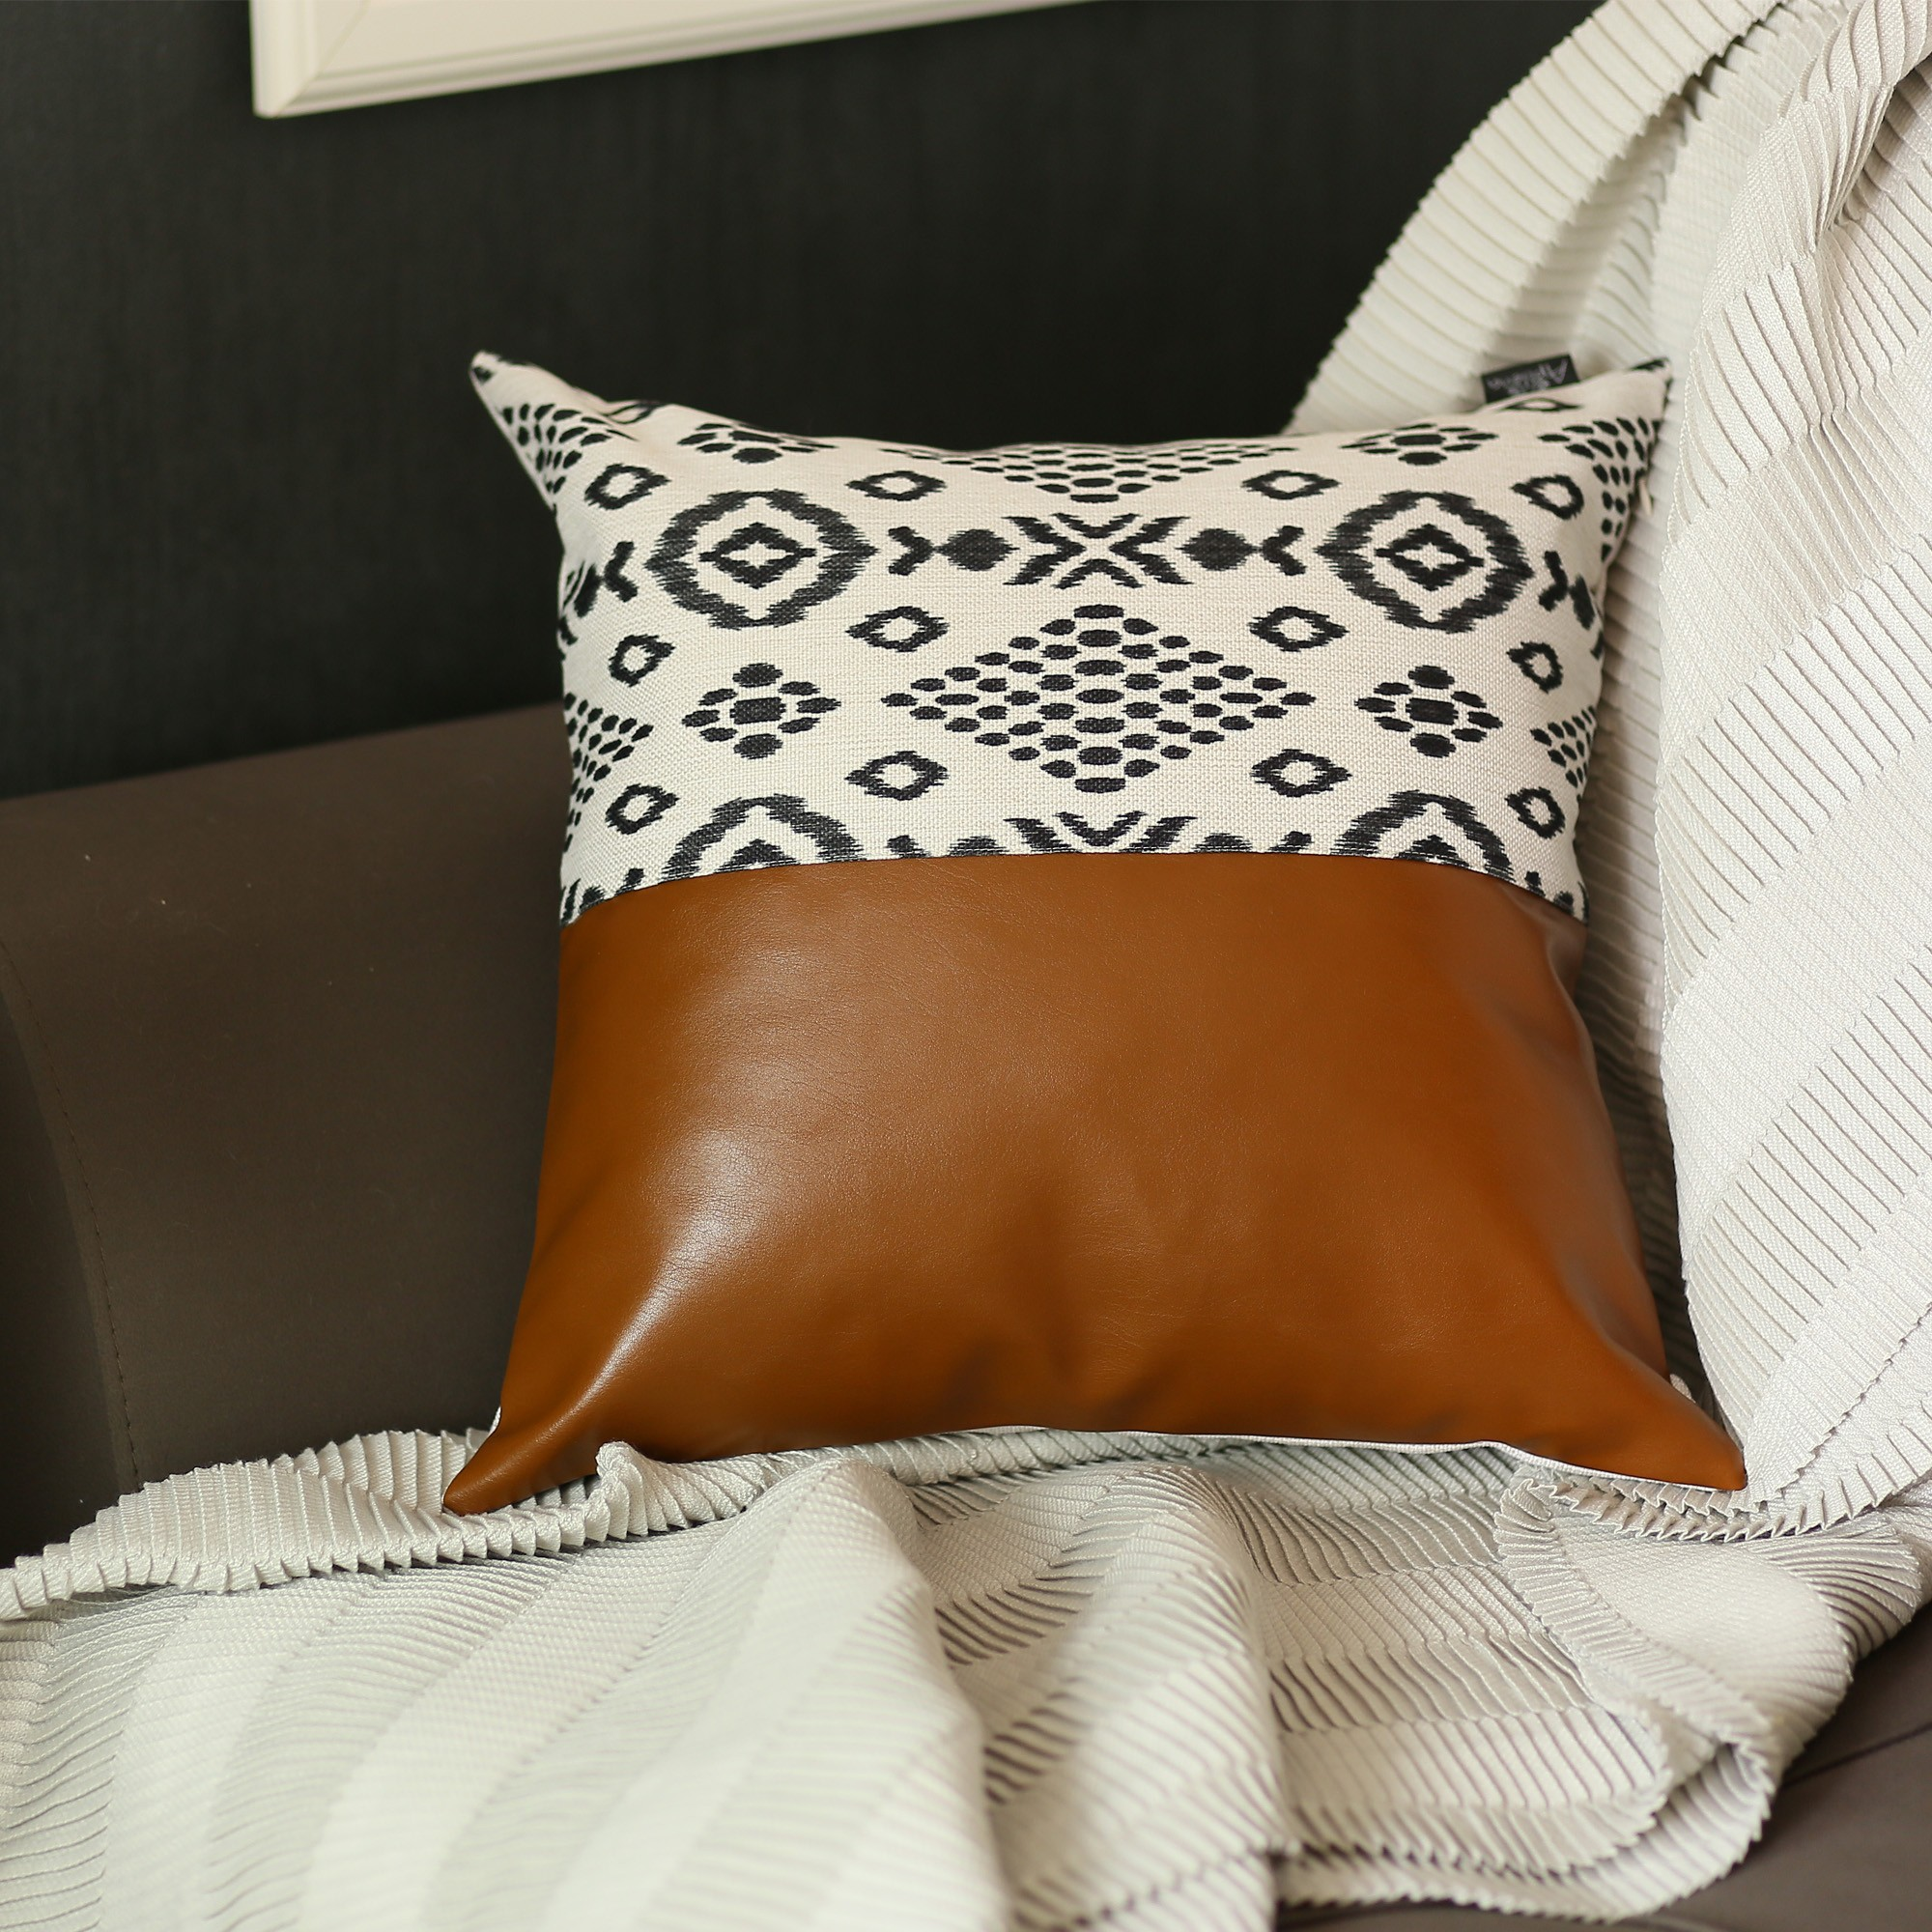 Chic Faux Pillow Covers